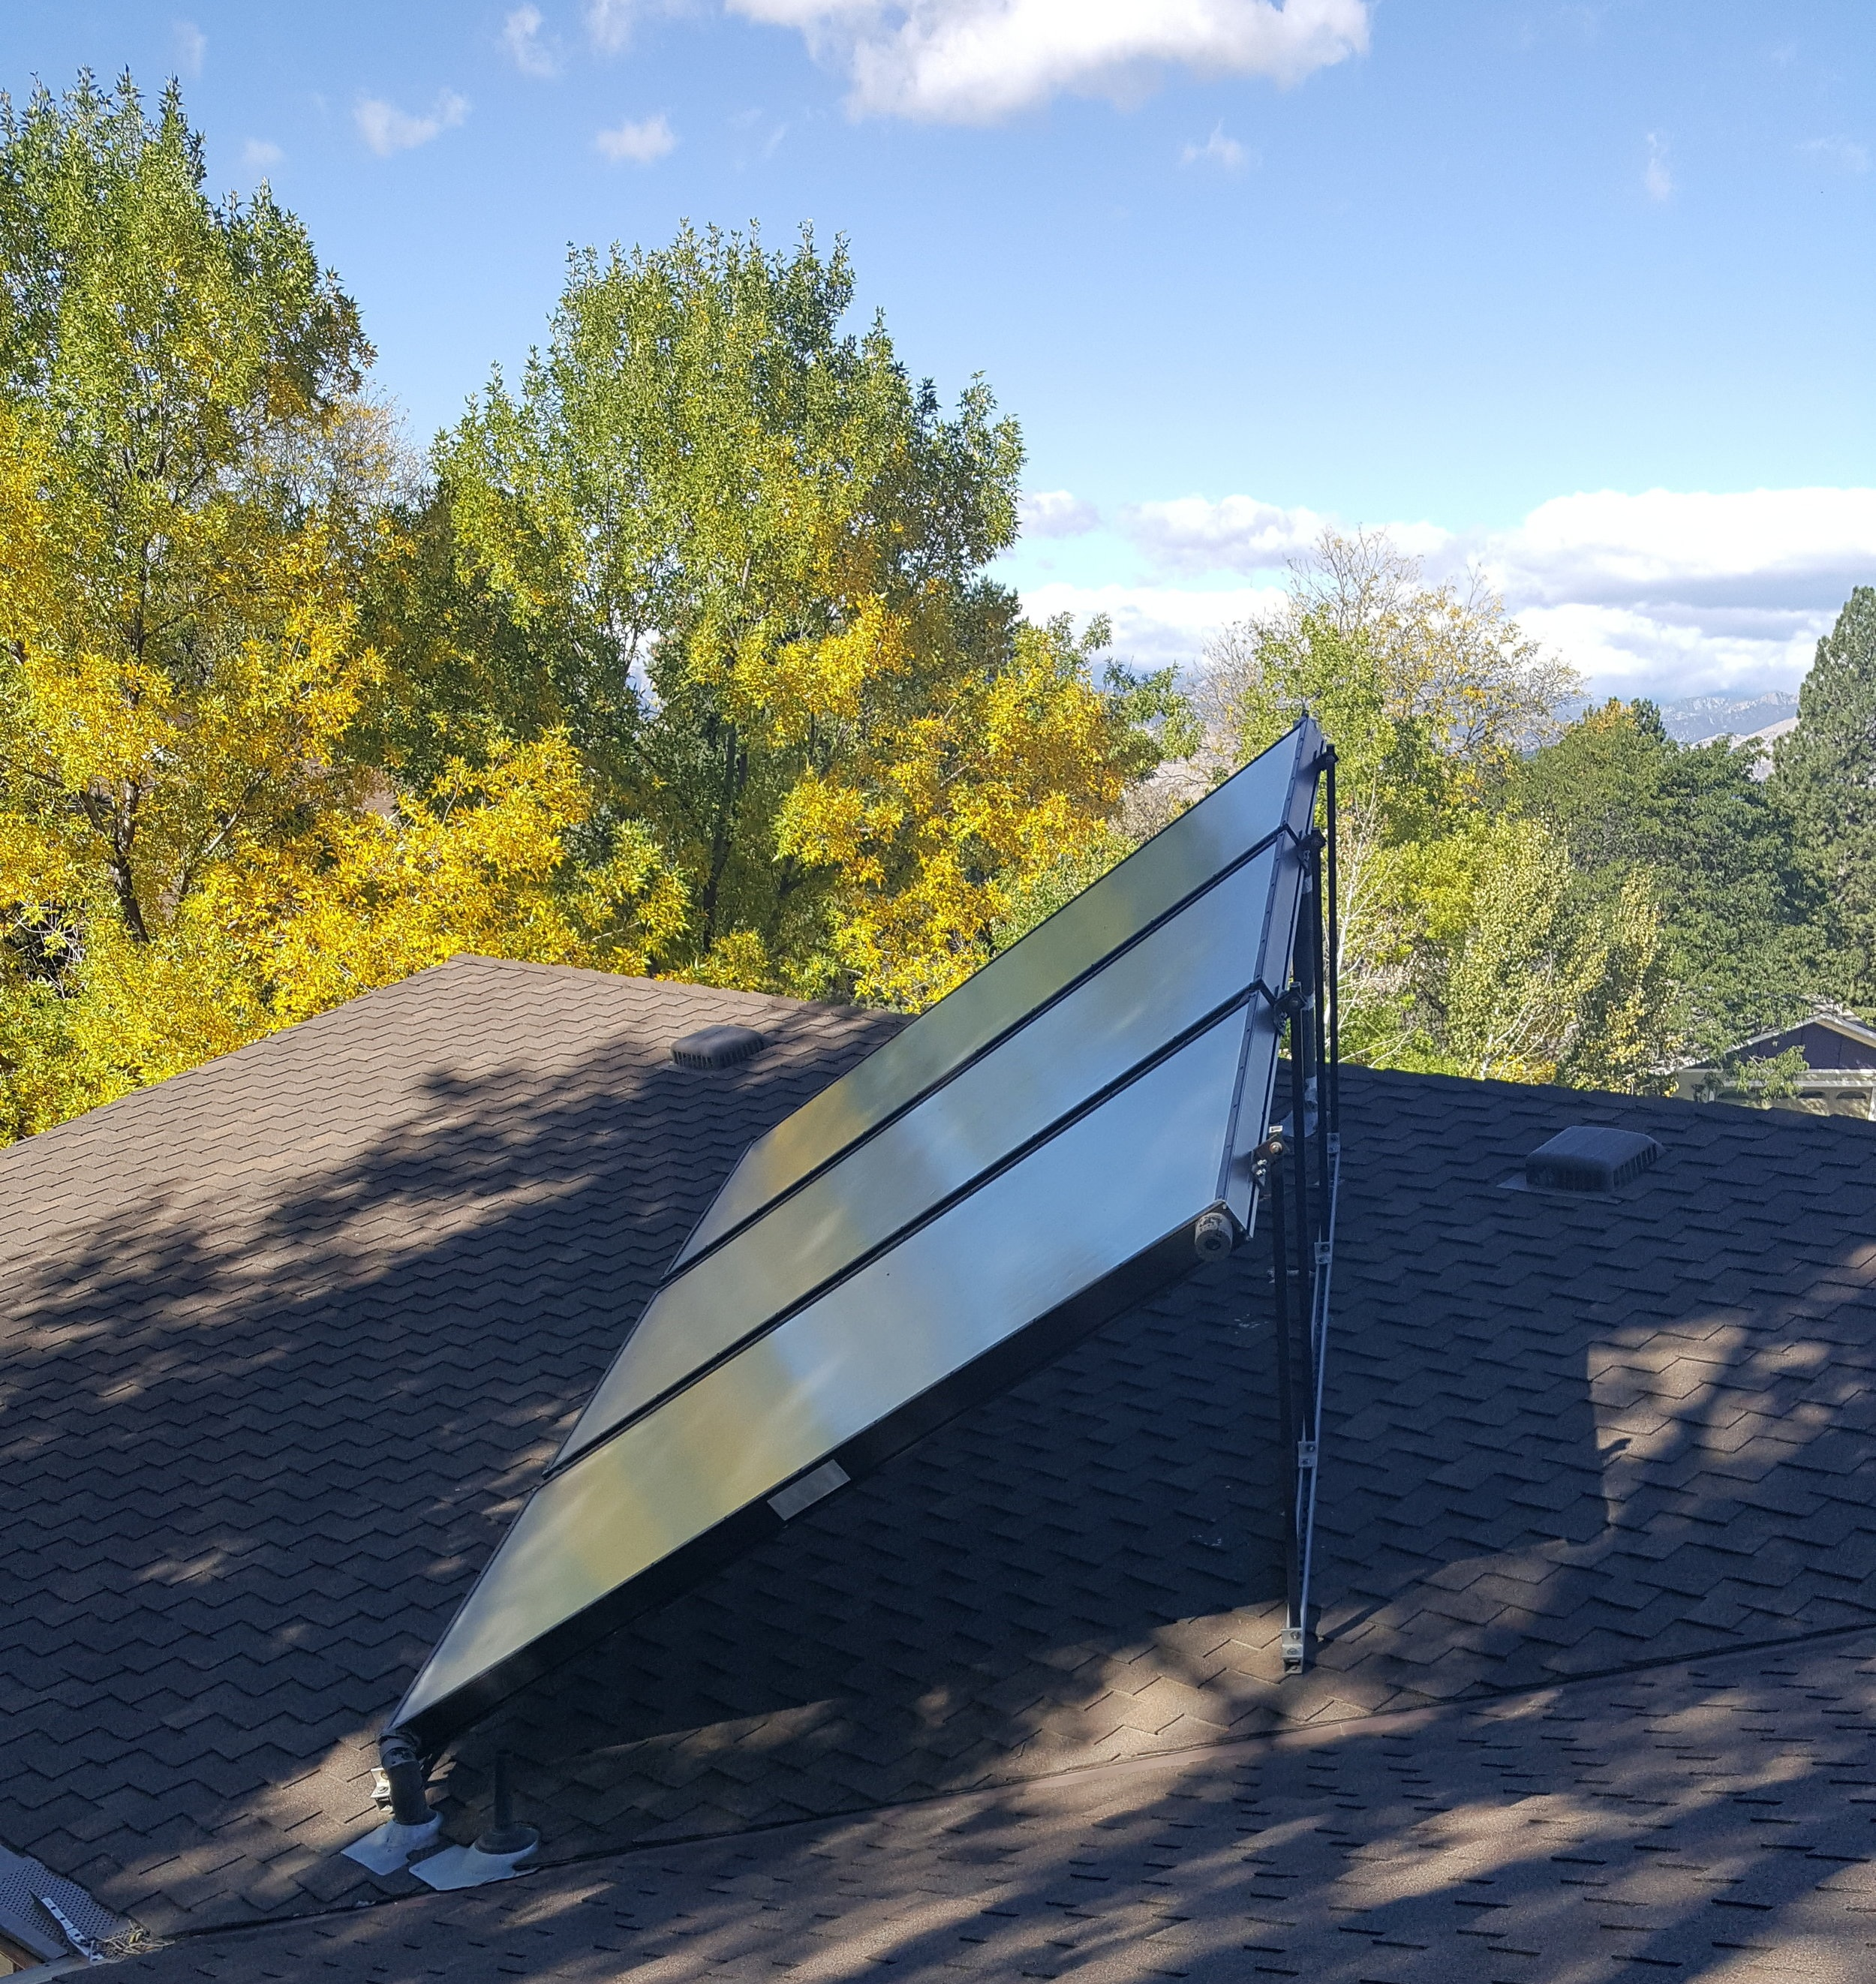 Aqua Care Solar servicing Longmont